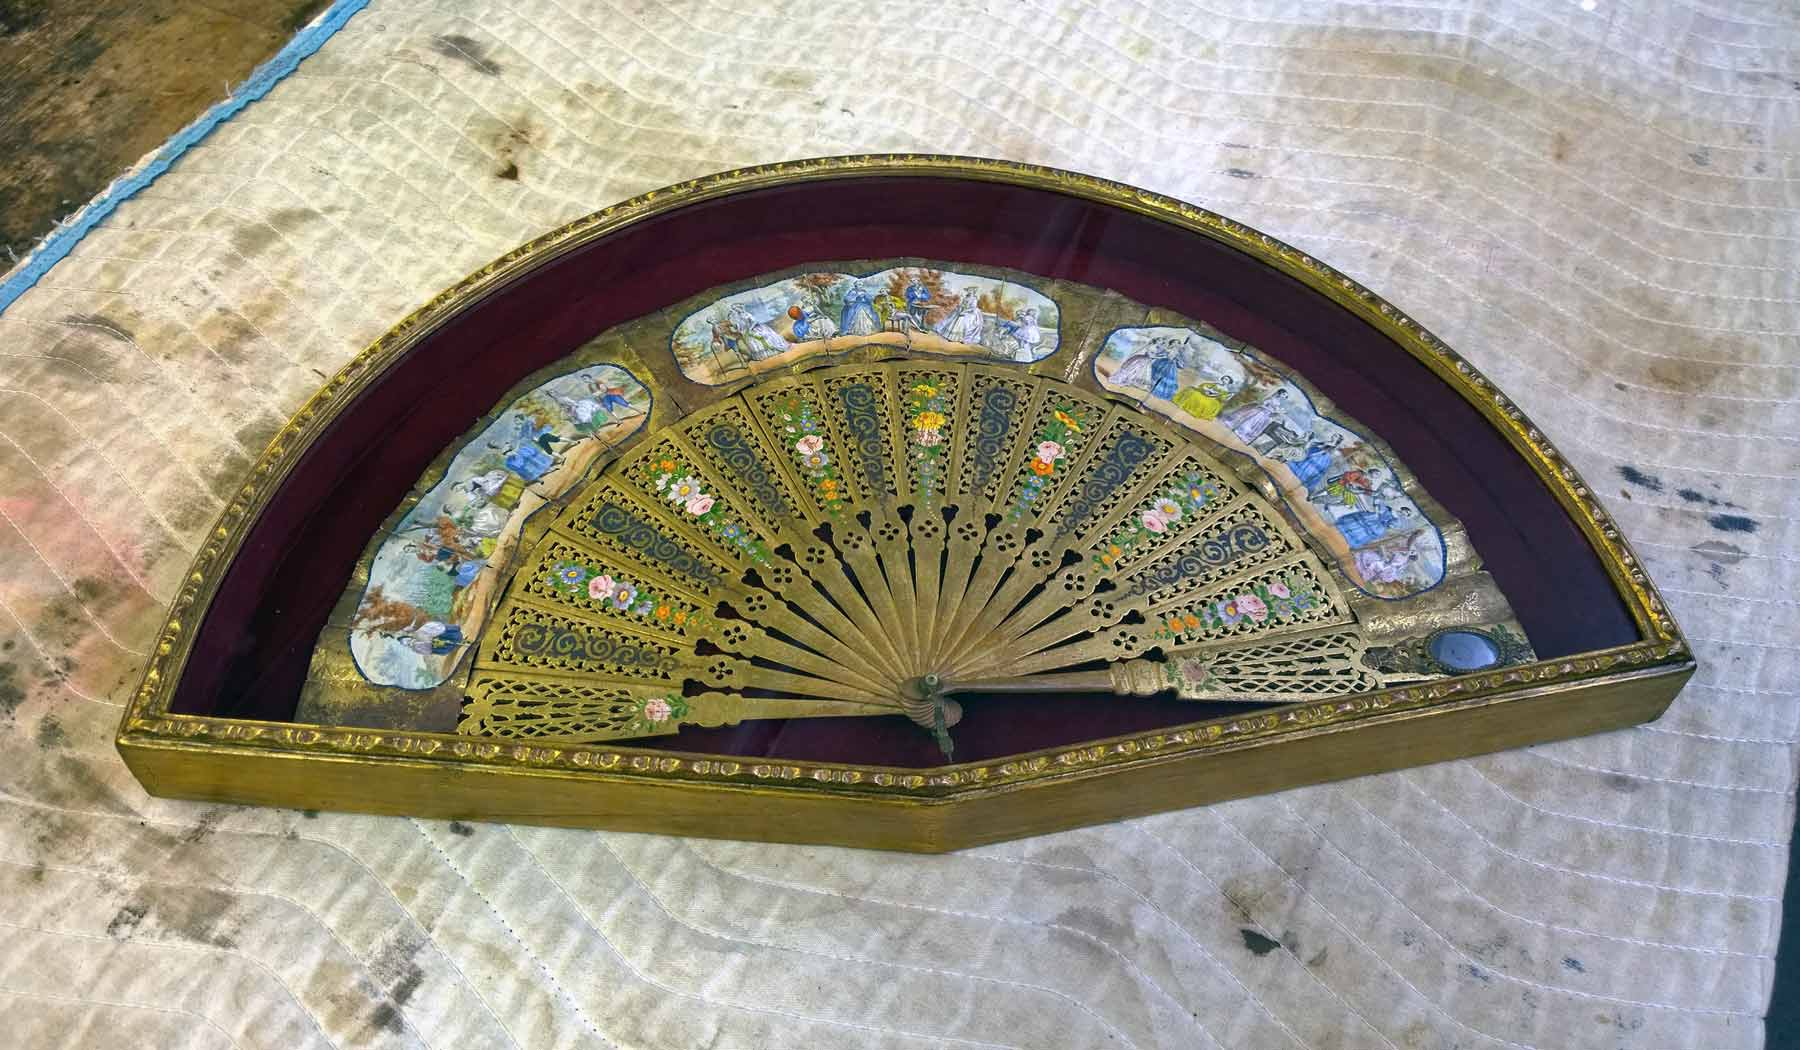 Antique hand fan display